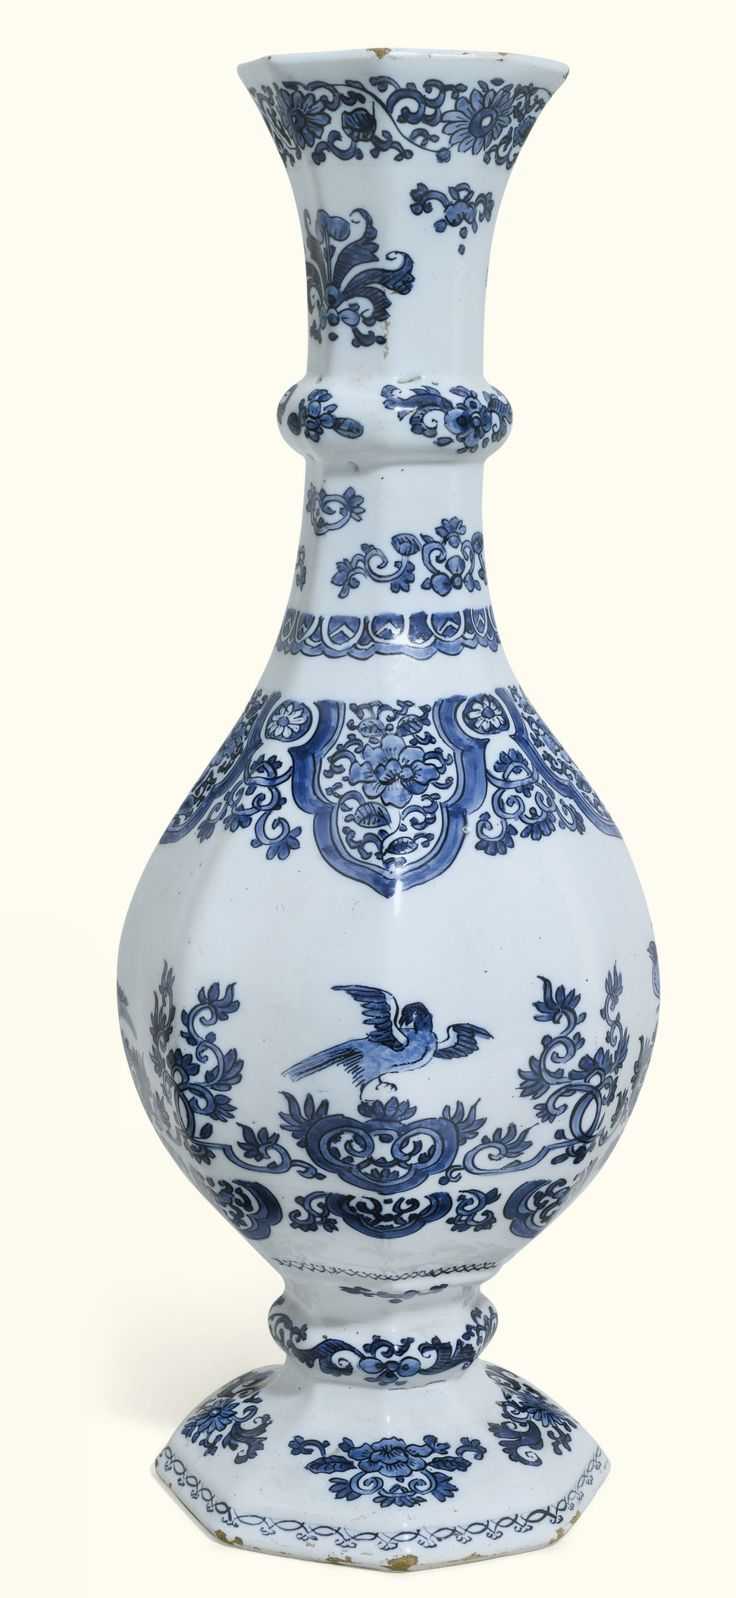 A tall Dutch Delft blue and white octagonal bottle vase, circa 1680-1690   Lot   Sotheby's